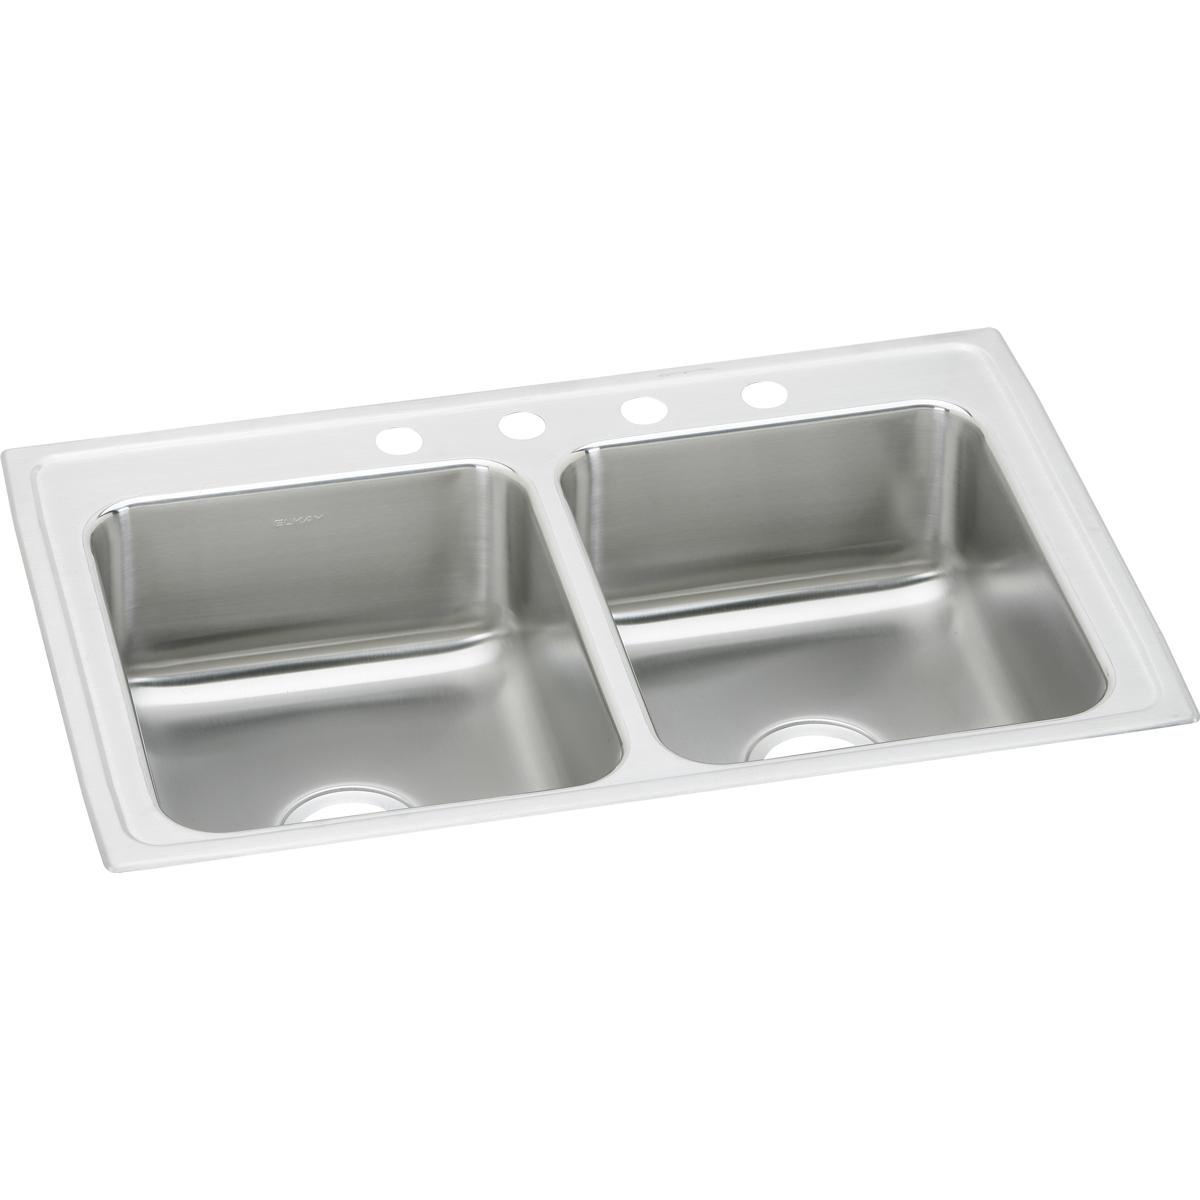 "Elkay Lustertone Classic Stainless Steel 29"" x 22"" x 7-5/8"", Equal Double Bowl Drop-in Sink"